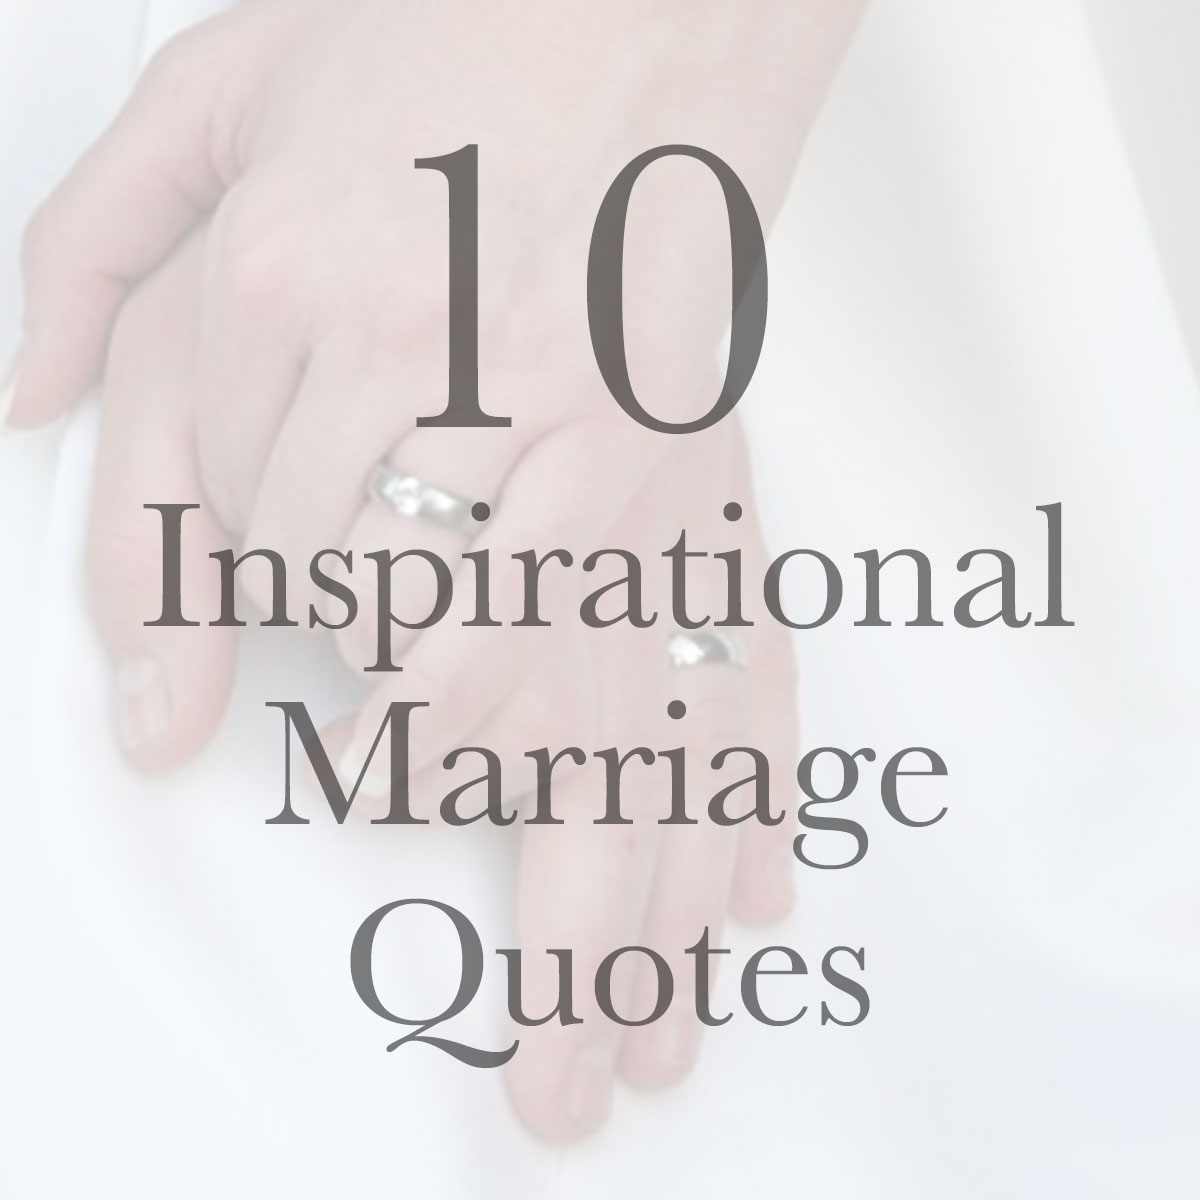 Funny Quotes Love And Marriage : marriage quotes